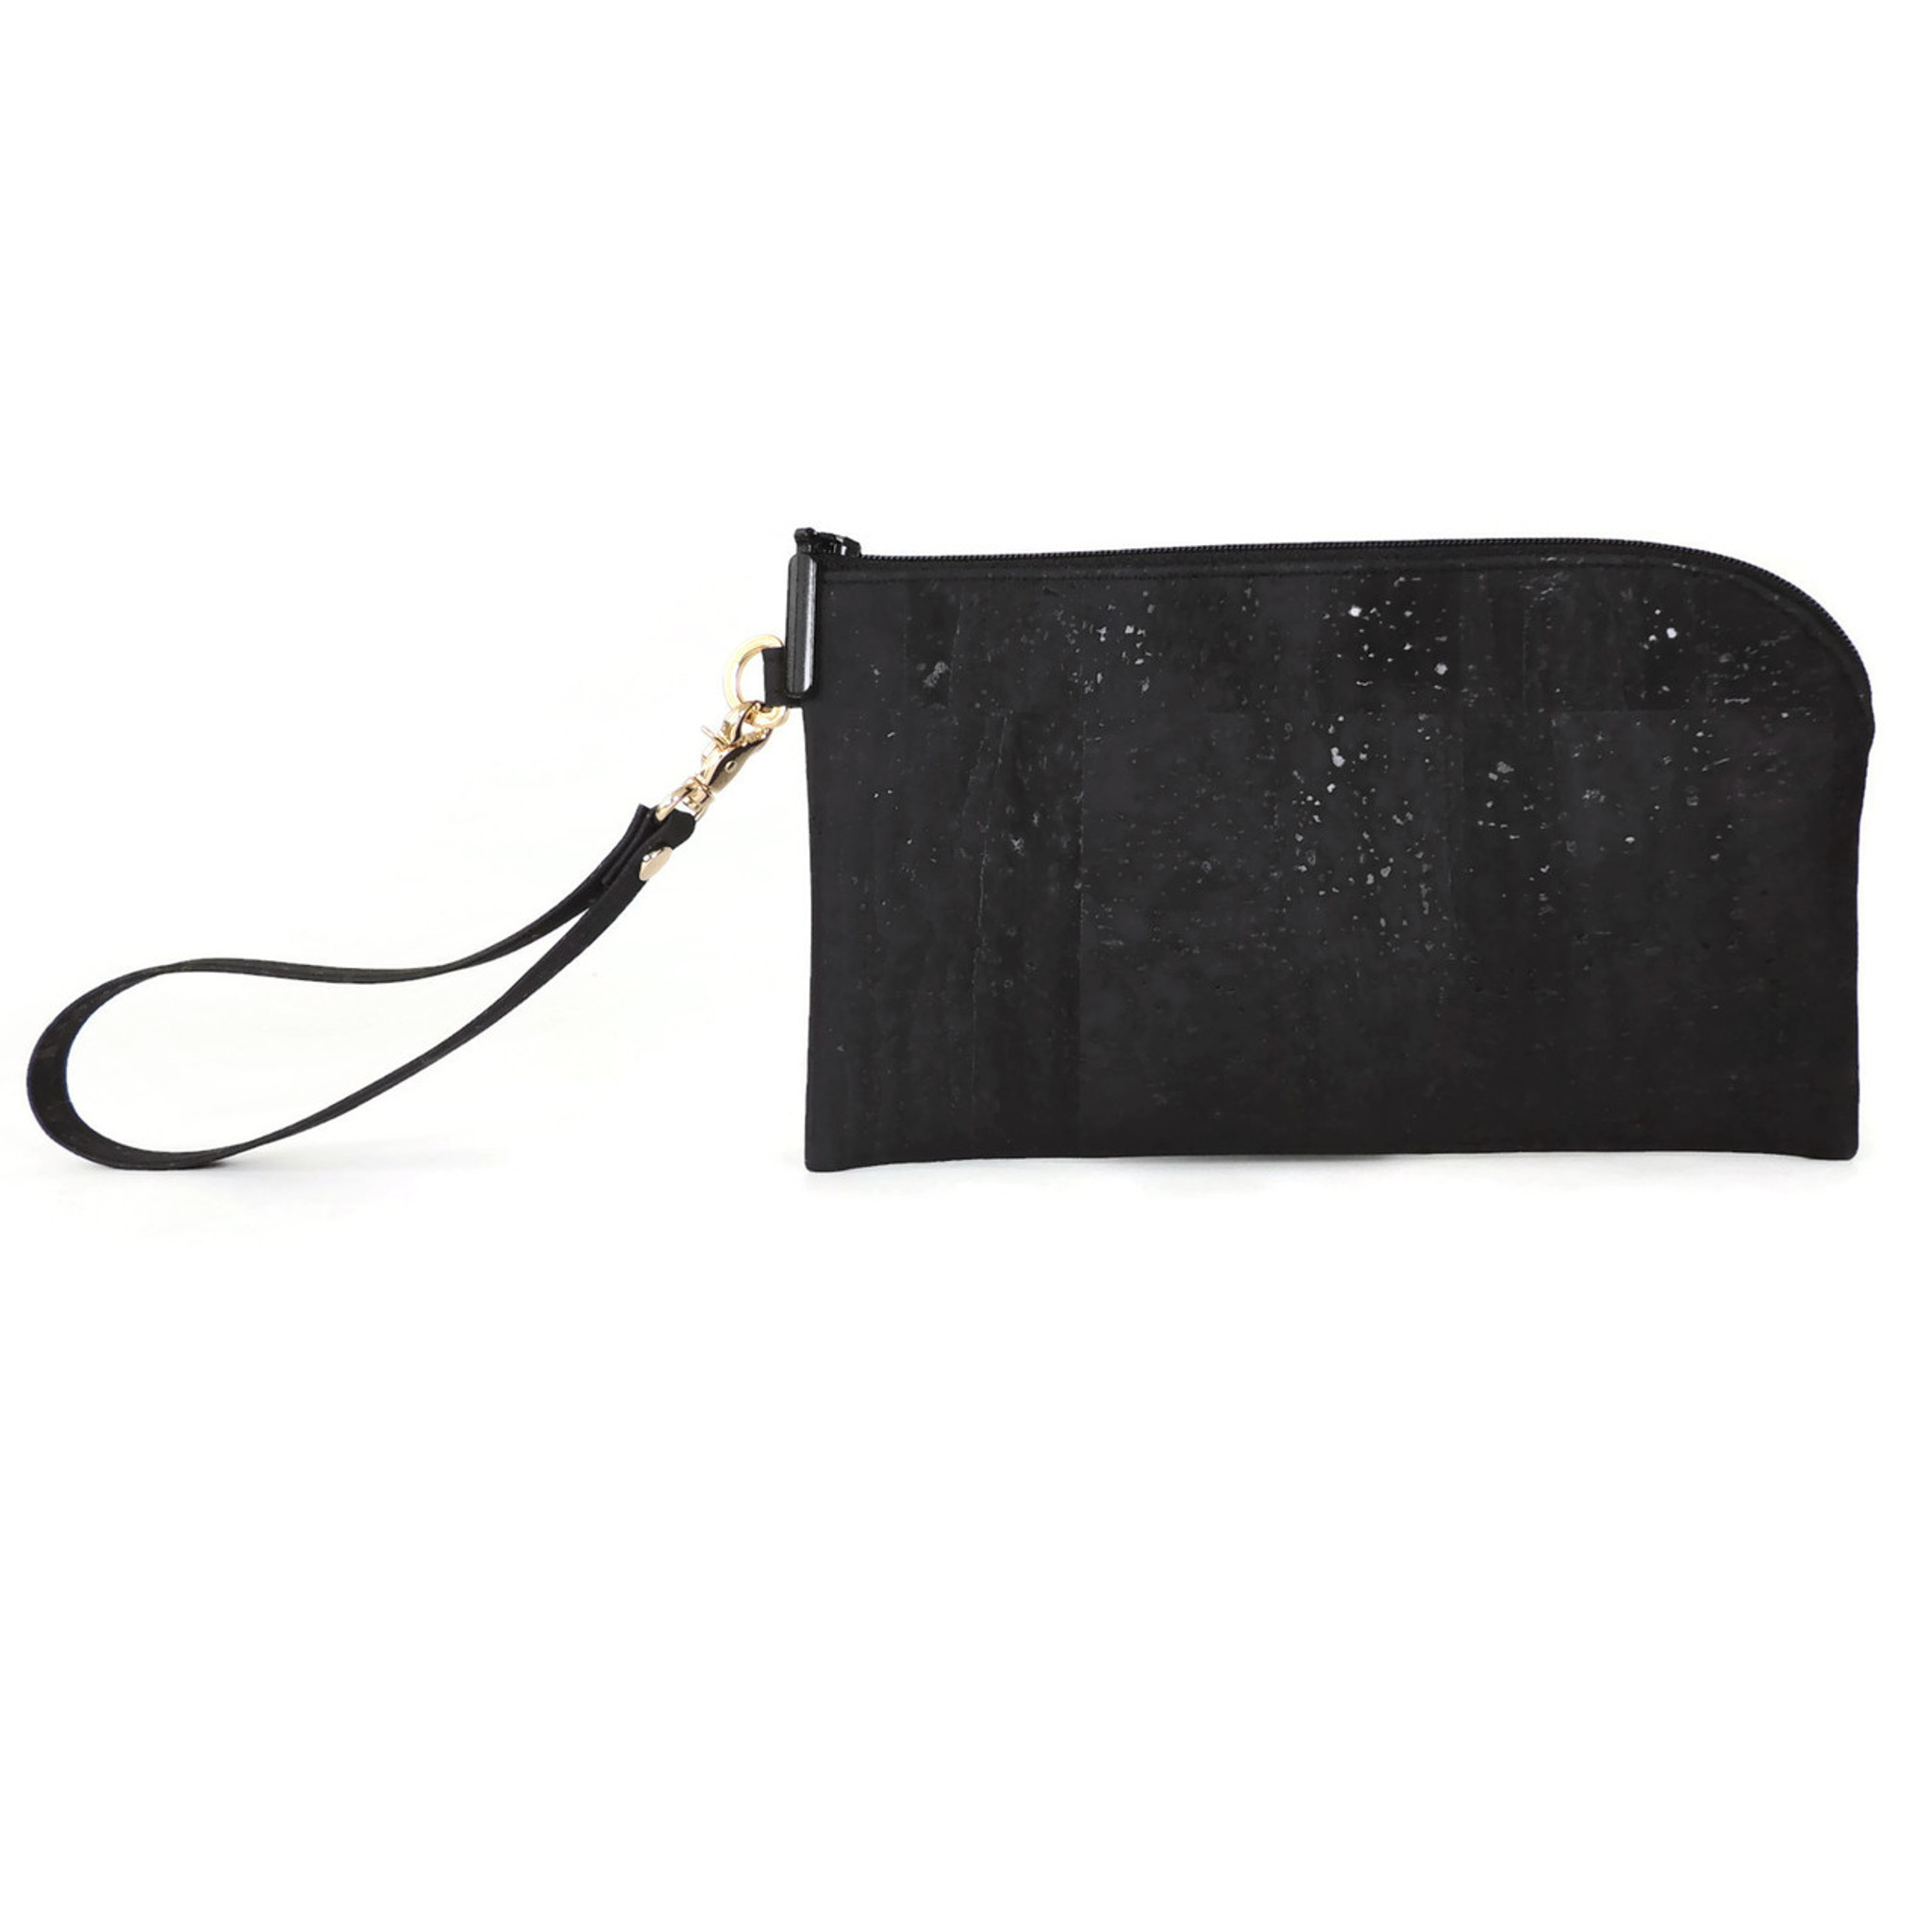 Phone Wristlet in Black Cork